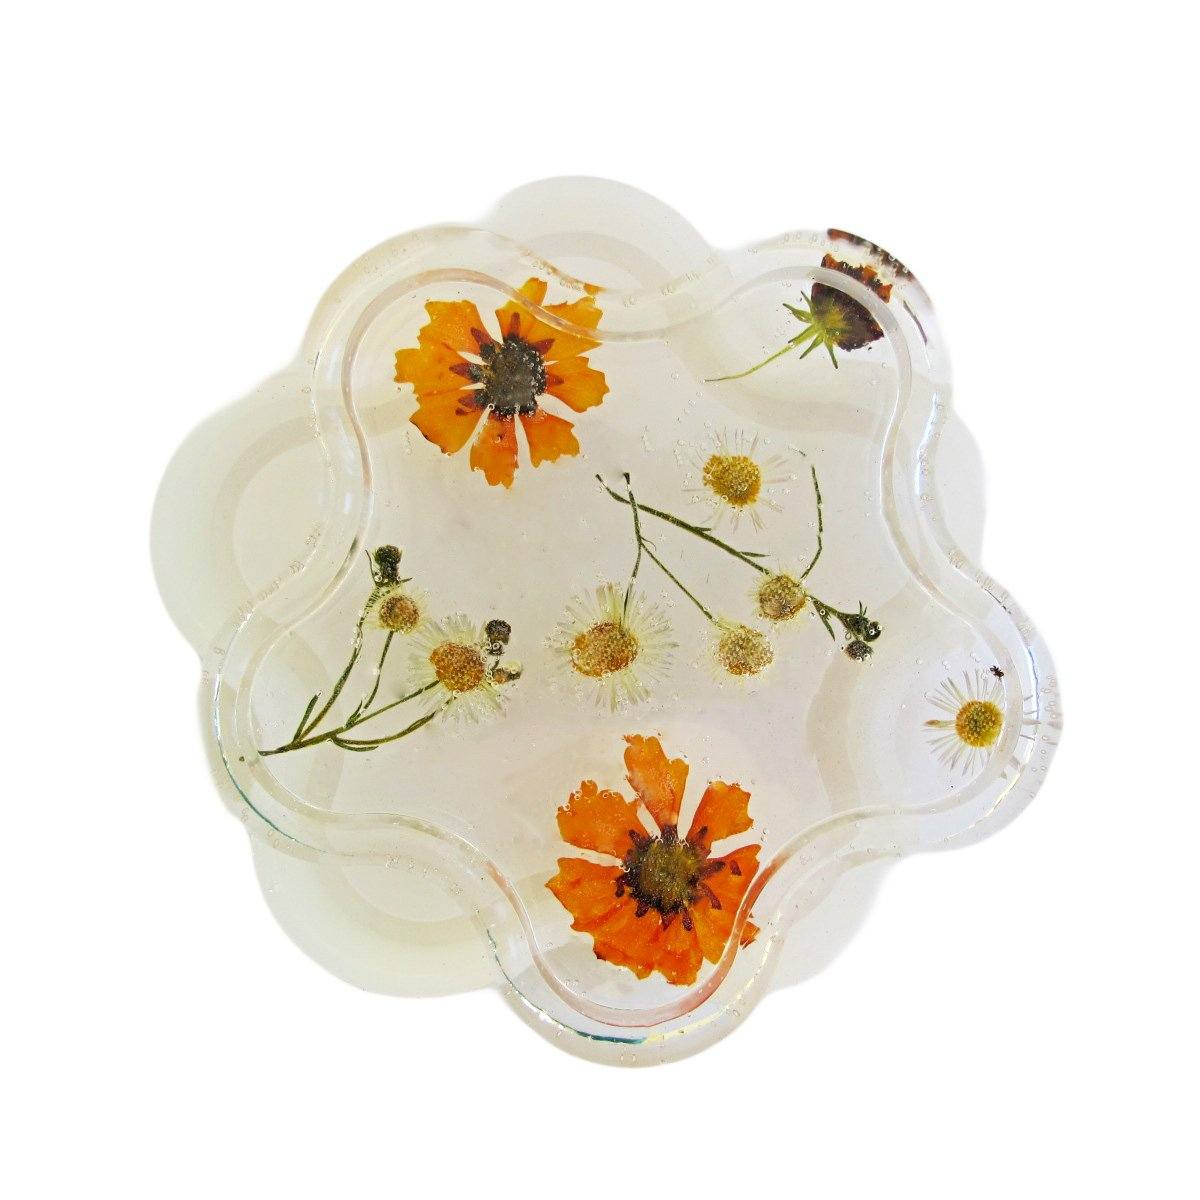 https://www.resinobsession.com/products/flower-shape-silicone-coaster-trinket-dish-mold/